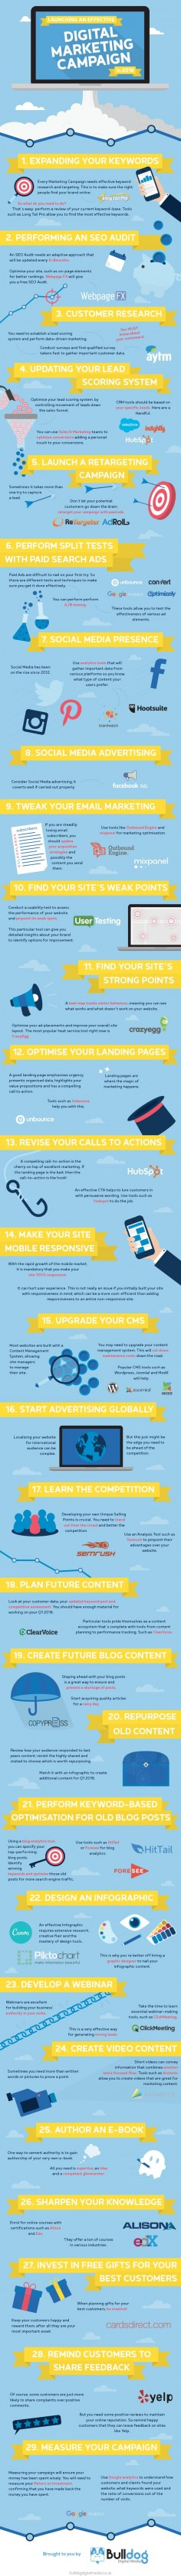 """Want your business to dominate digital marketing in 2016? Look no further. Check out the following infographic created by Gareth SEO Consultant and entitled, """"Dominate 2016 With This Done For You Digital Marketing Guide."""""""